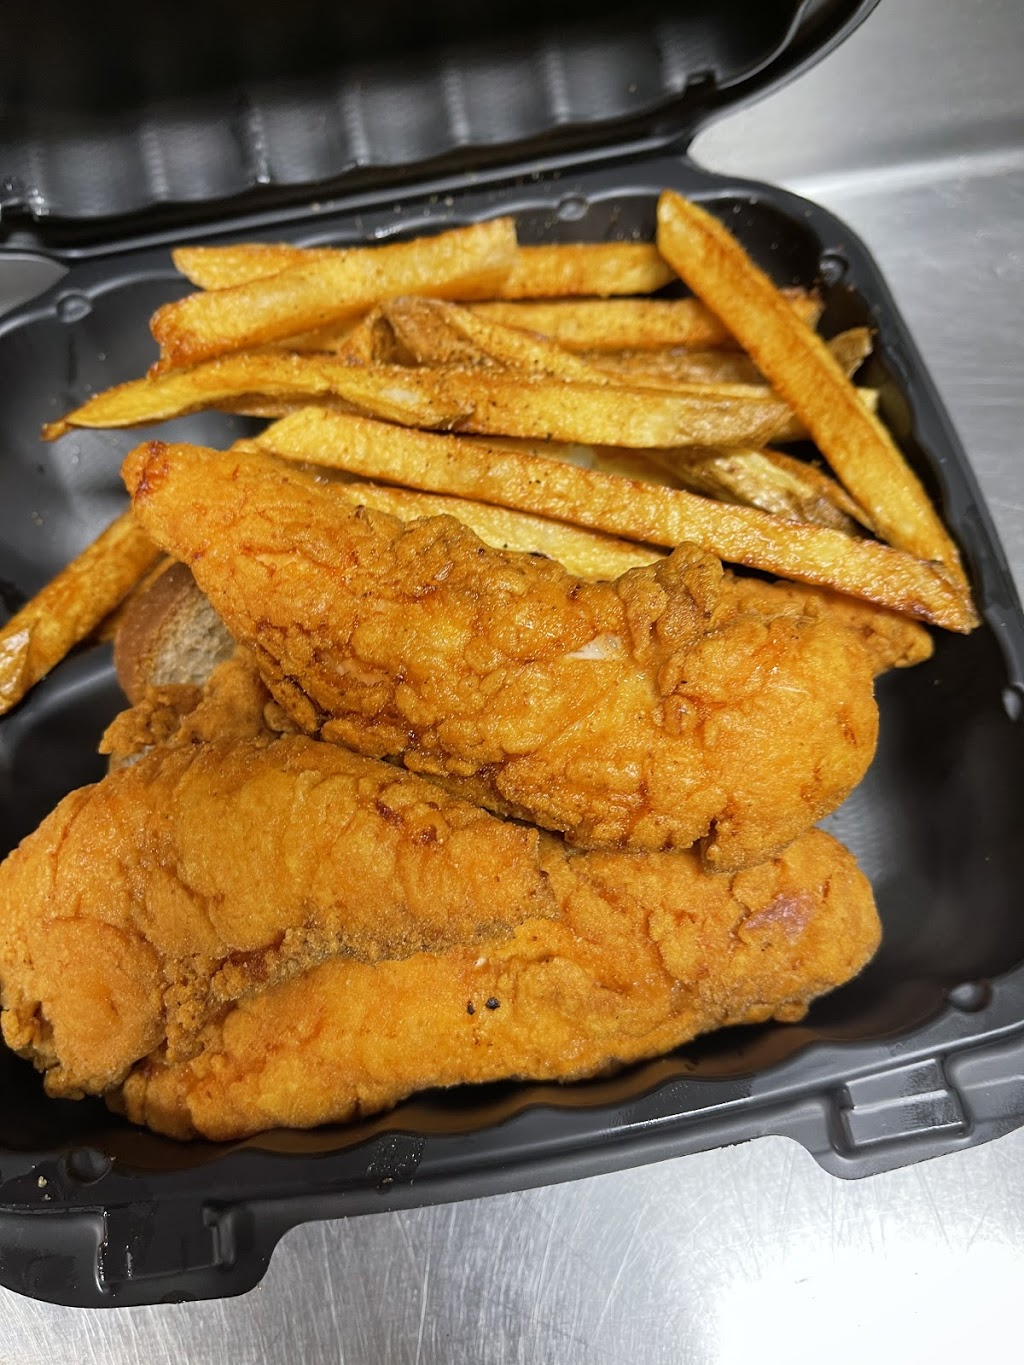 Authentic Cooking Soul Food Kitchen | restaurant | 306 E 75th St Suite B, Chicago, IL 60619, USA | 7733666357 OR +1 773-366-6357